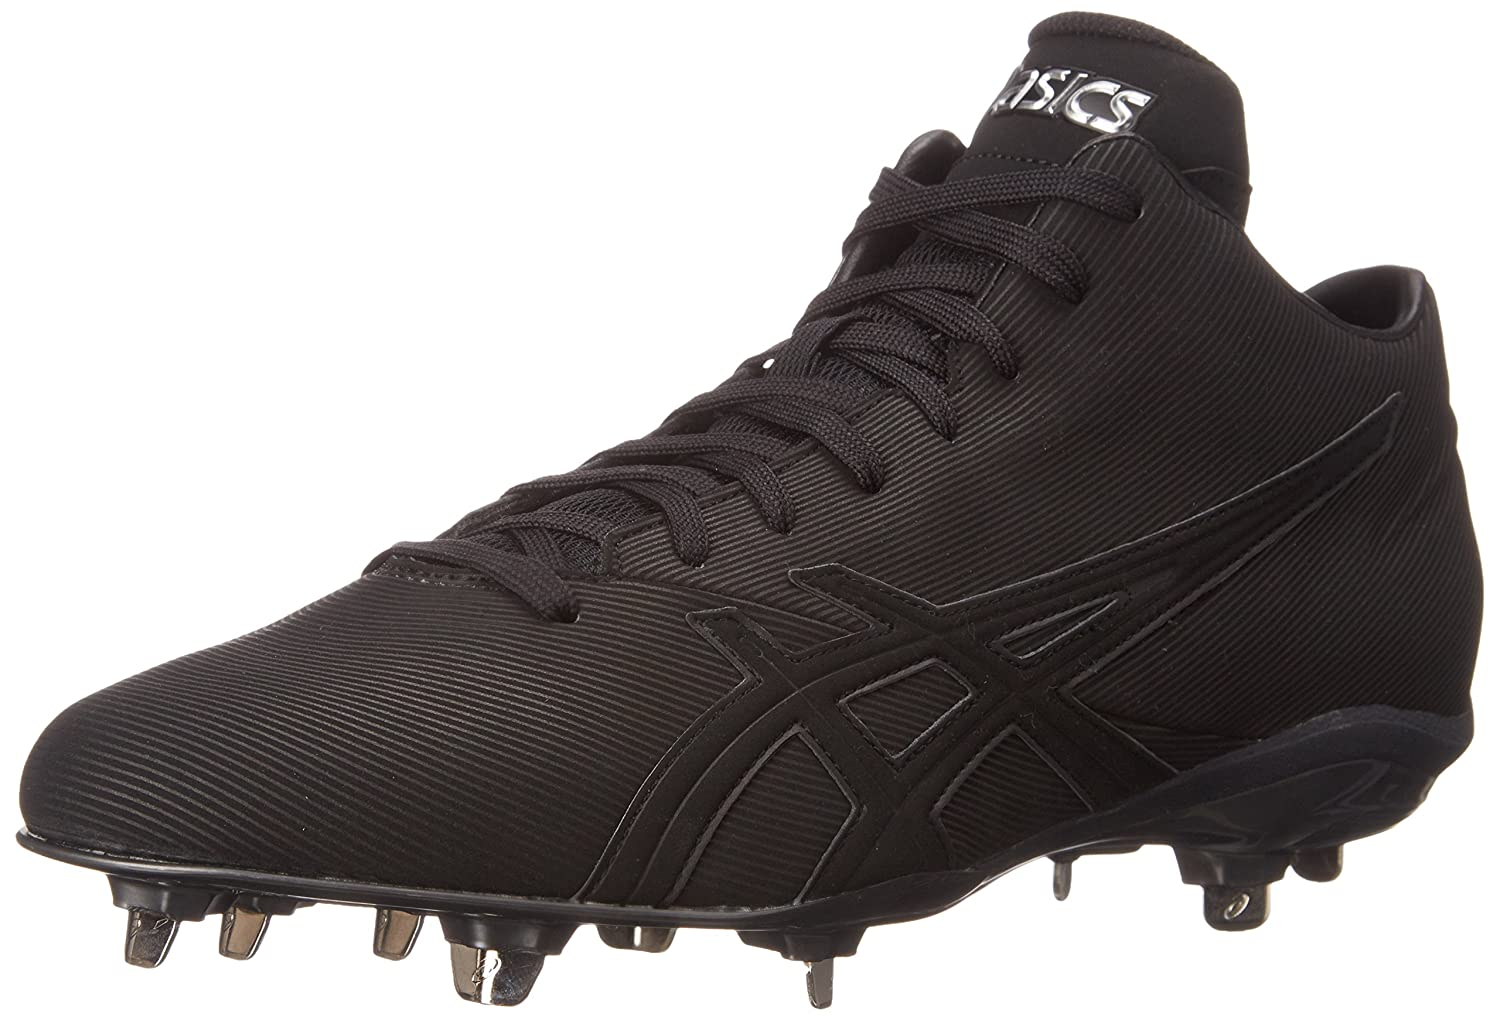 ASICS Men's Crossvictor QT Baseball Shoe B00Z9ZYG4C 7 D(M) US|Black/Black